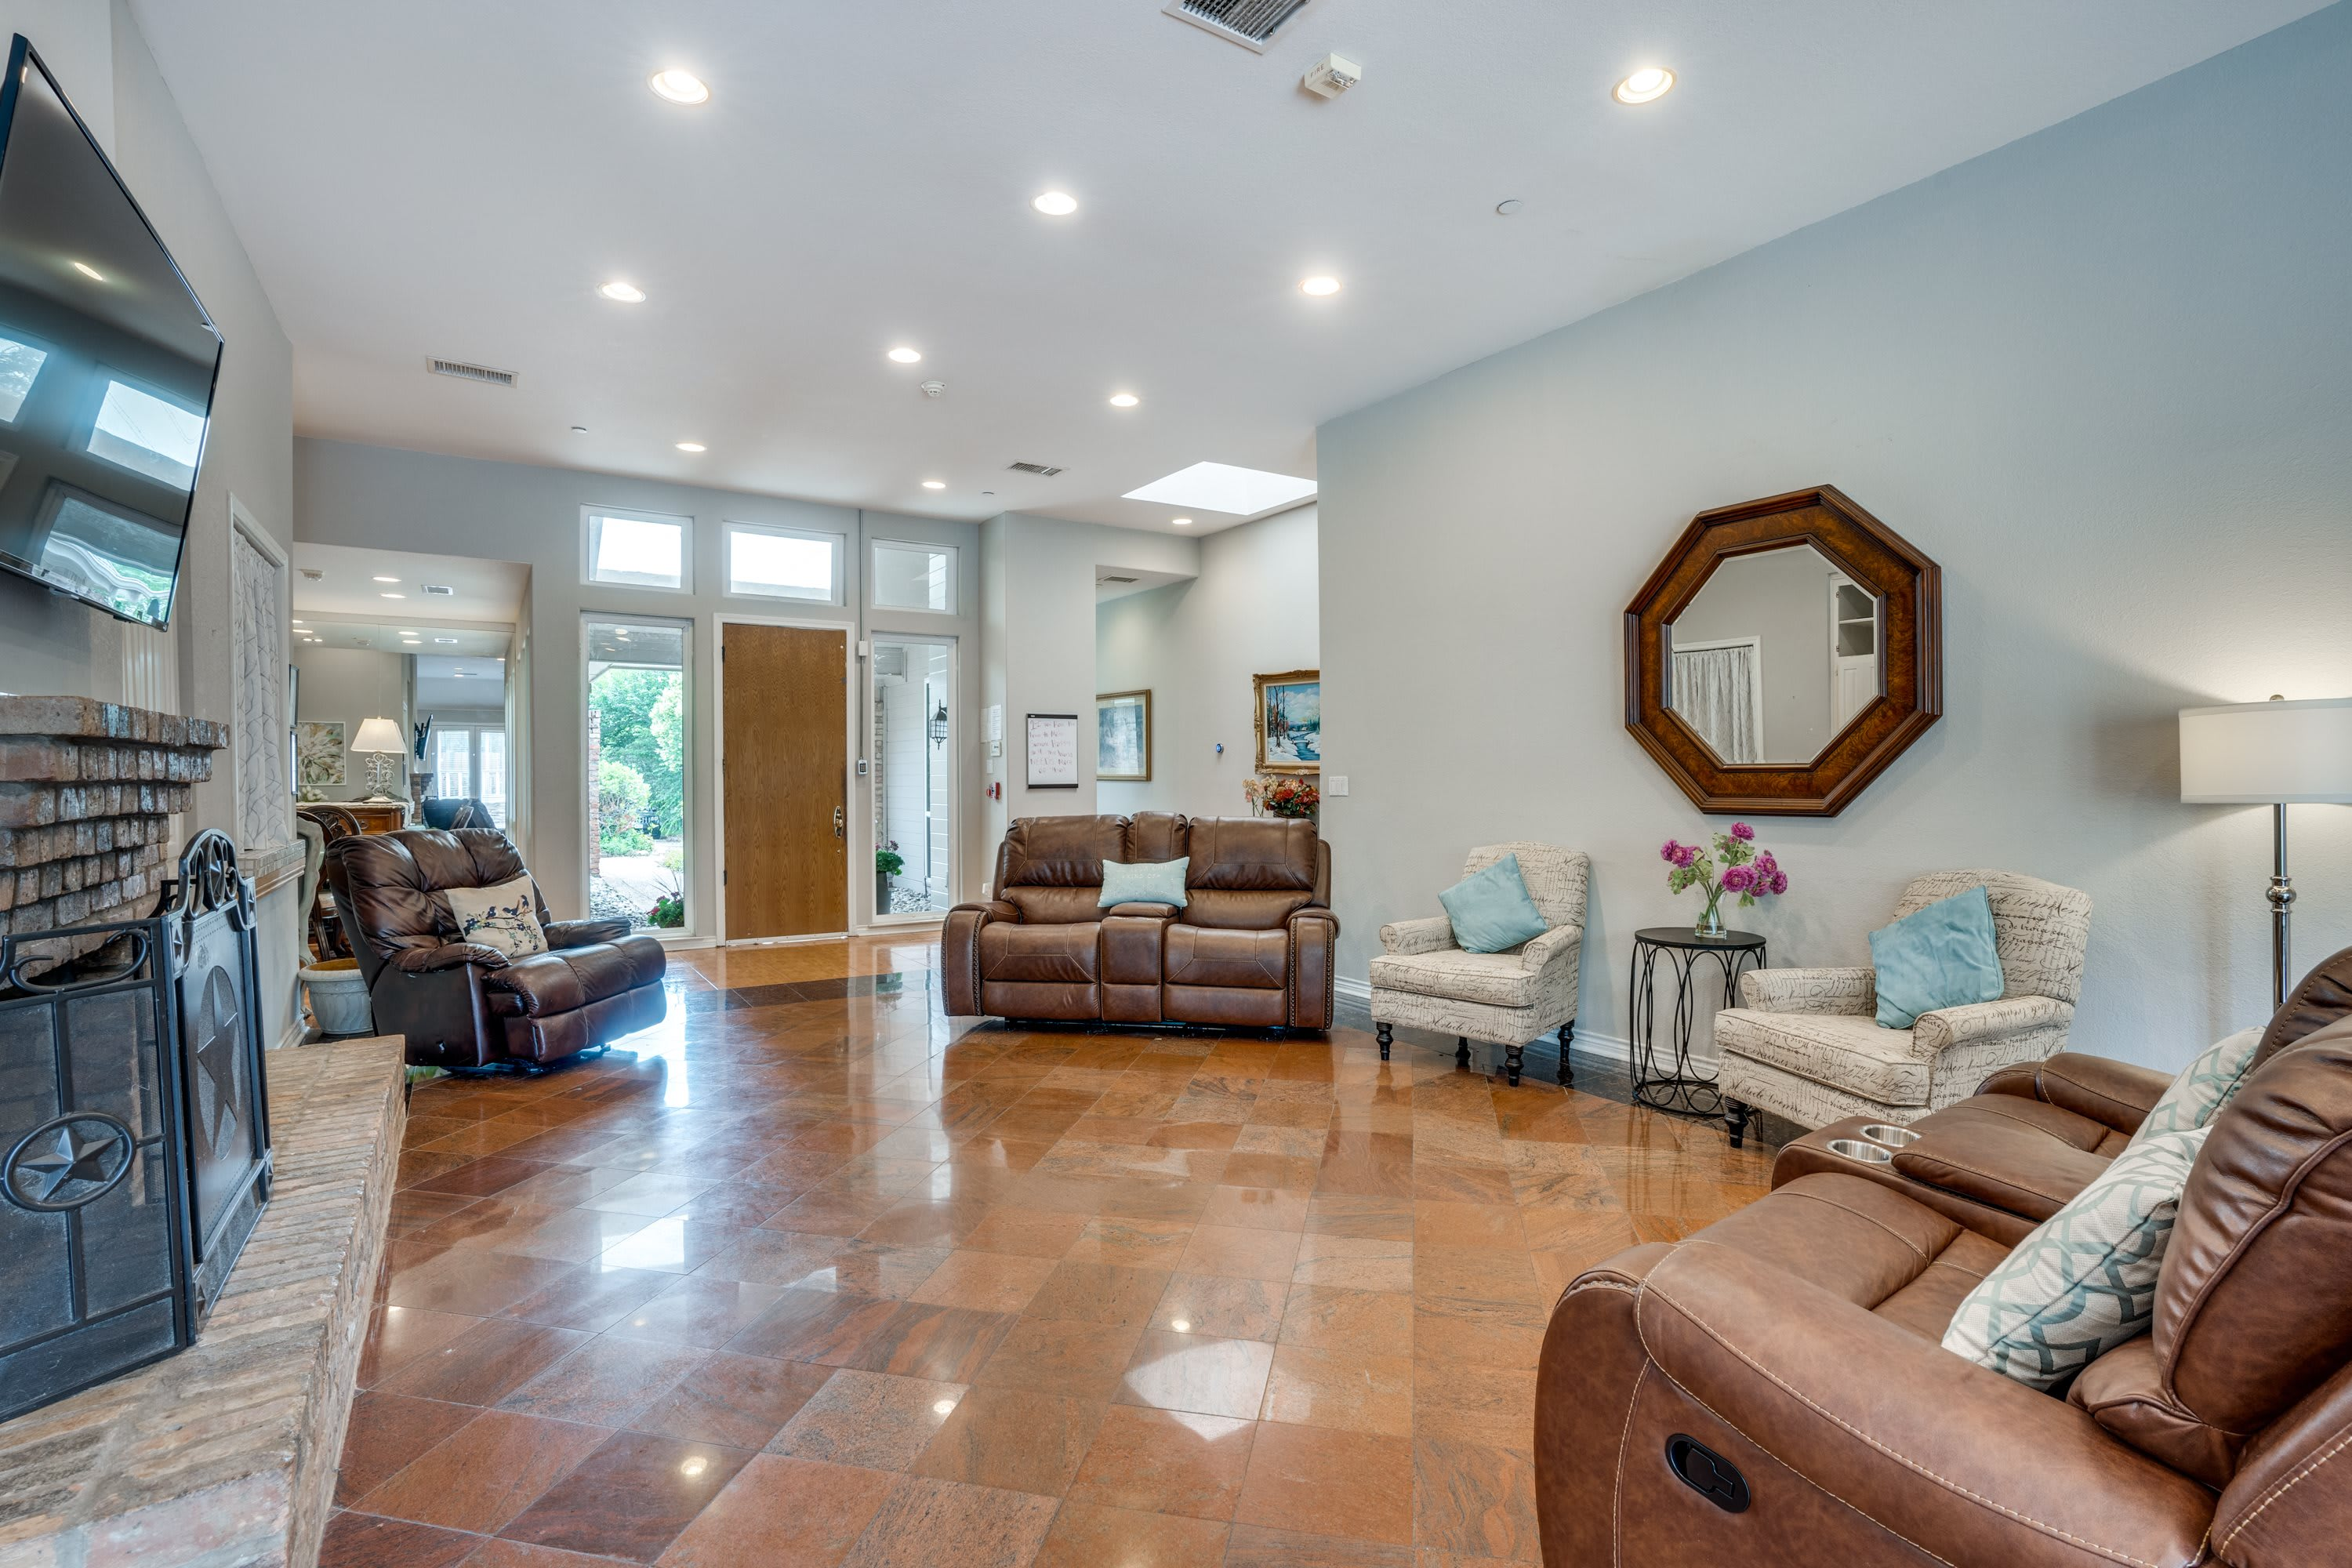 Photo 1 of Avendelle Assisted Living Lavendale